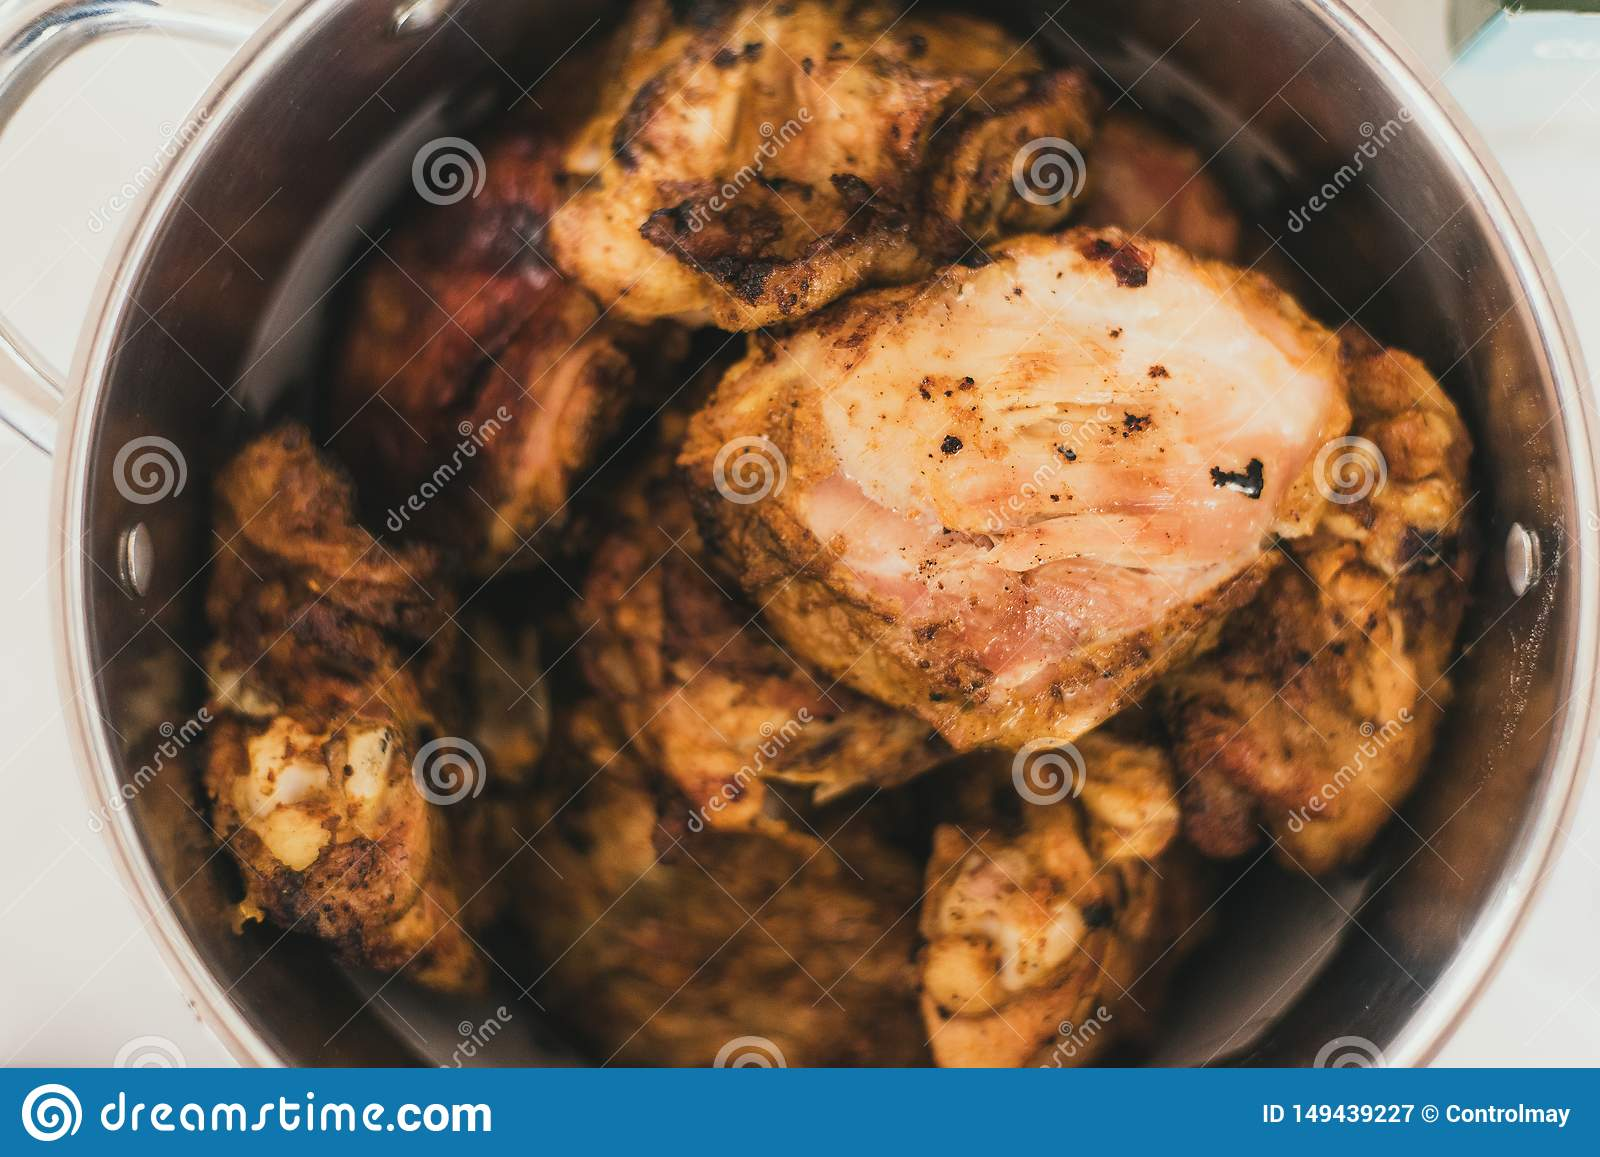 Grilled chicken in a saucepan. Chicken with a golden crust